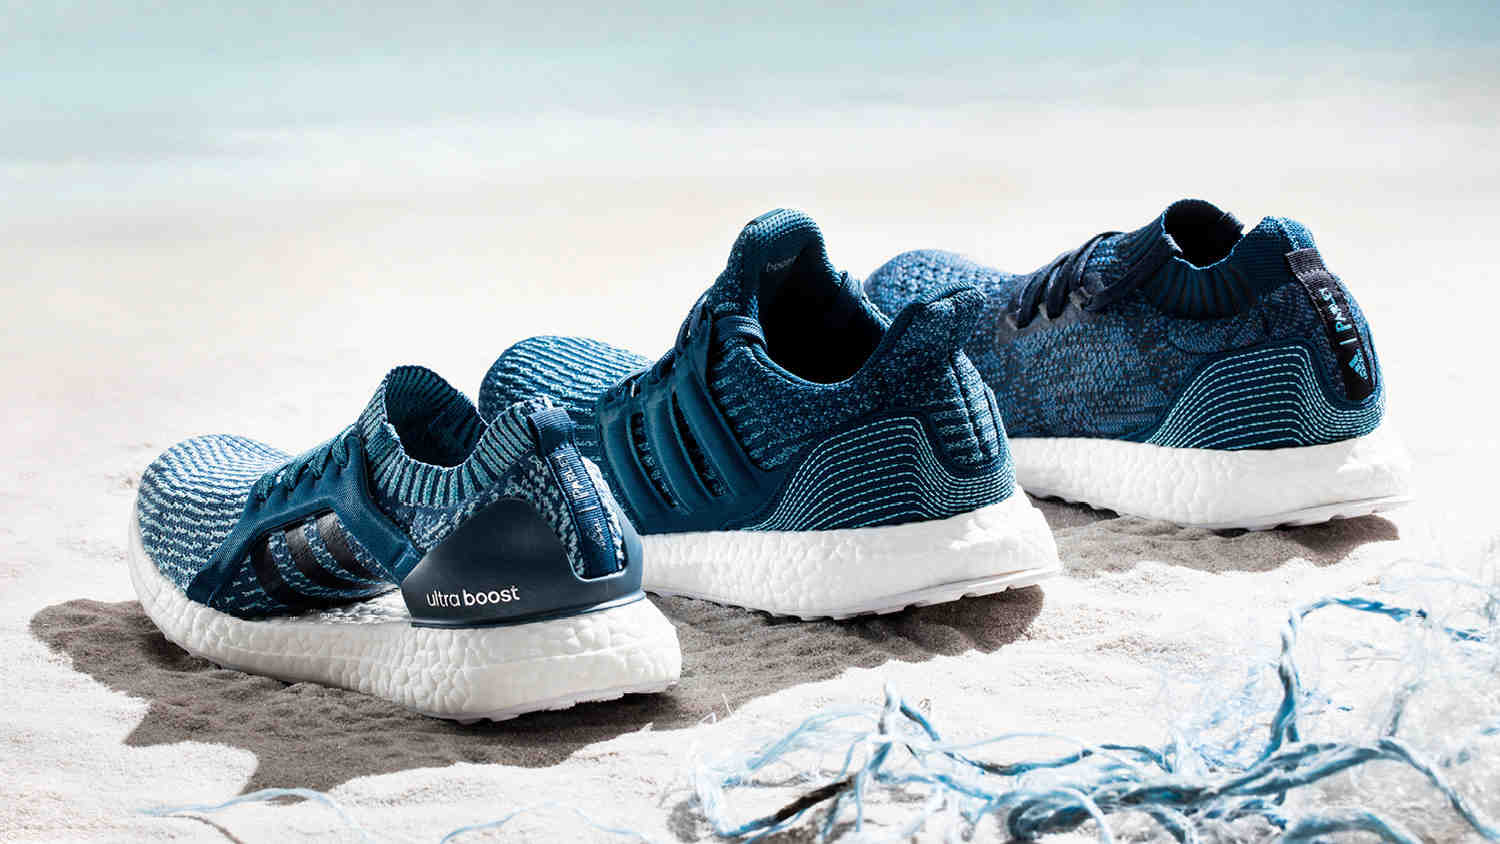 The Adidas Parley UltraBOOST, UltraBOOST X and UltraBOOST Uncaged collection